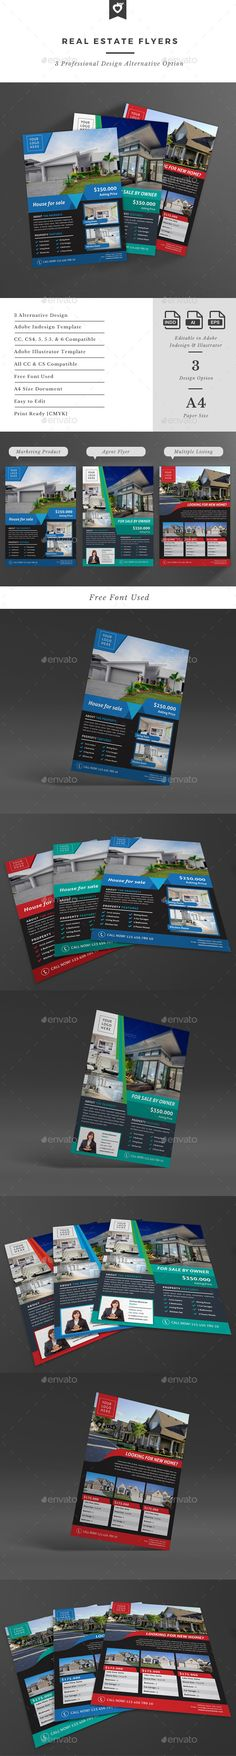 Real Estate Flyers Template #design Download: http://graphicriver.net/item/real-estate-flyers/12727580?ref=ksioks